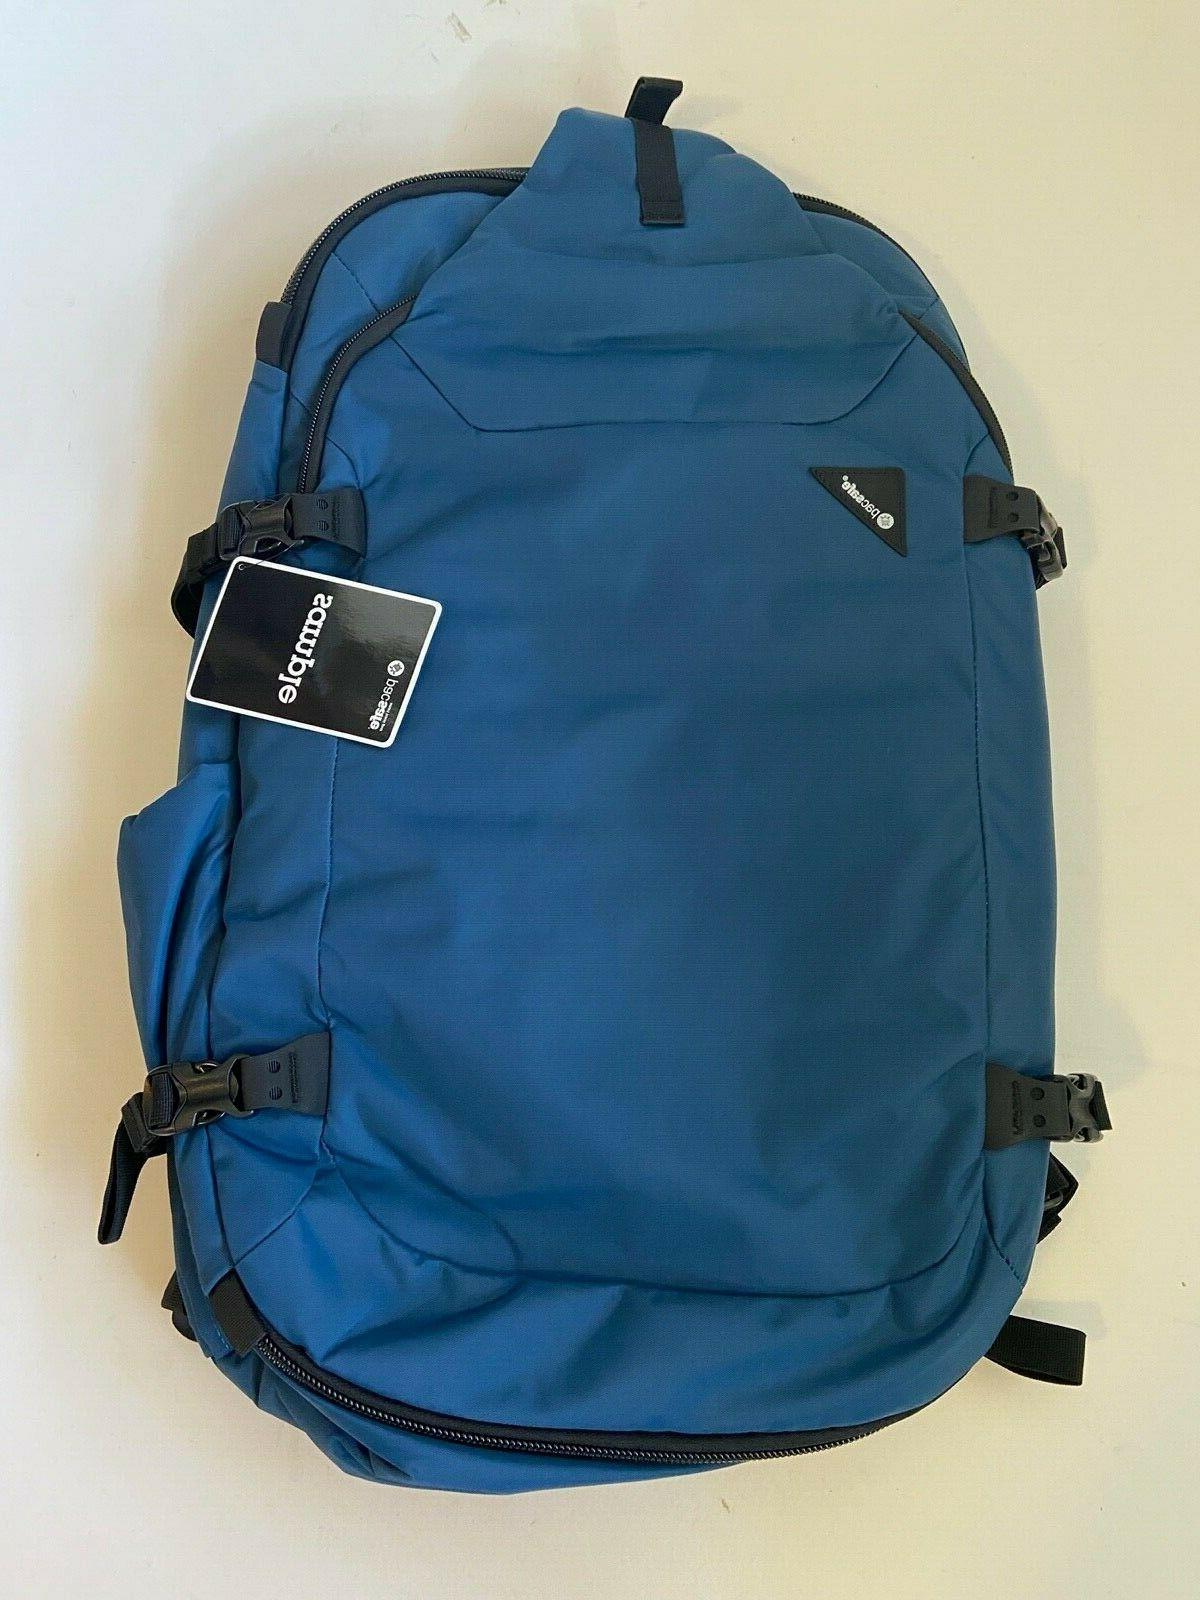 Pacsafe anti travel backpack